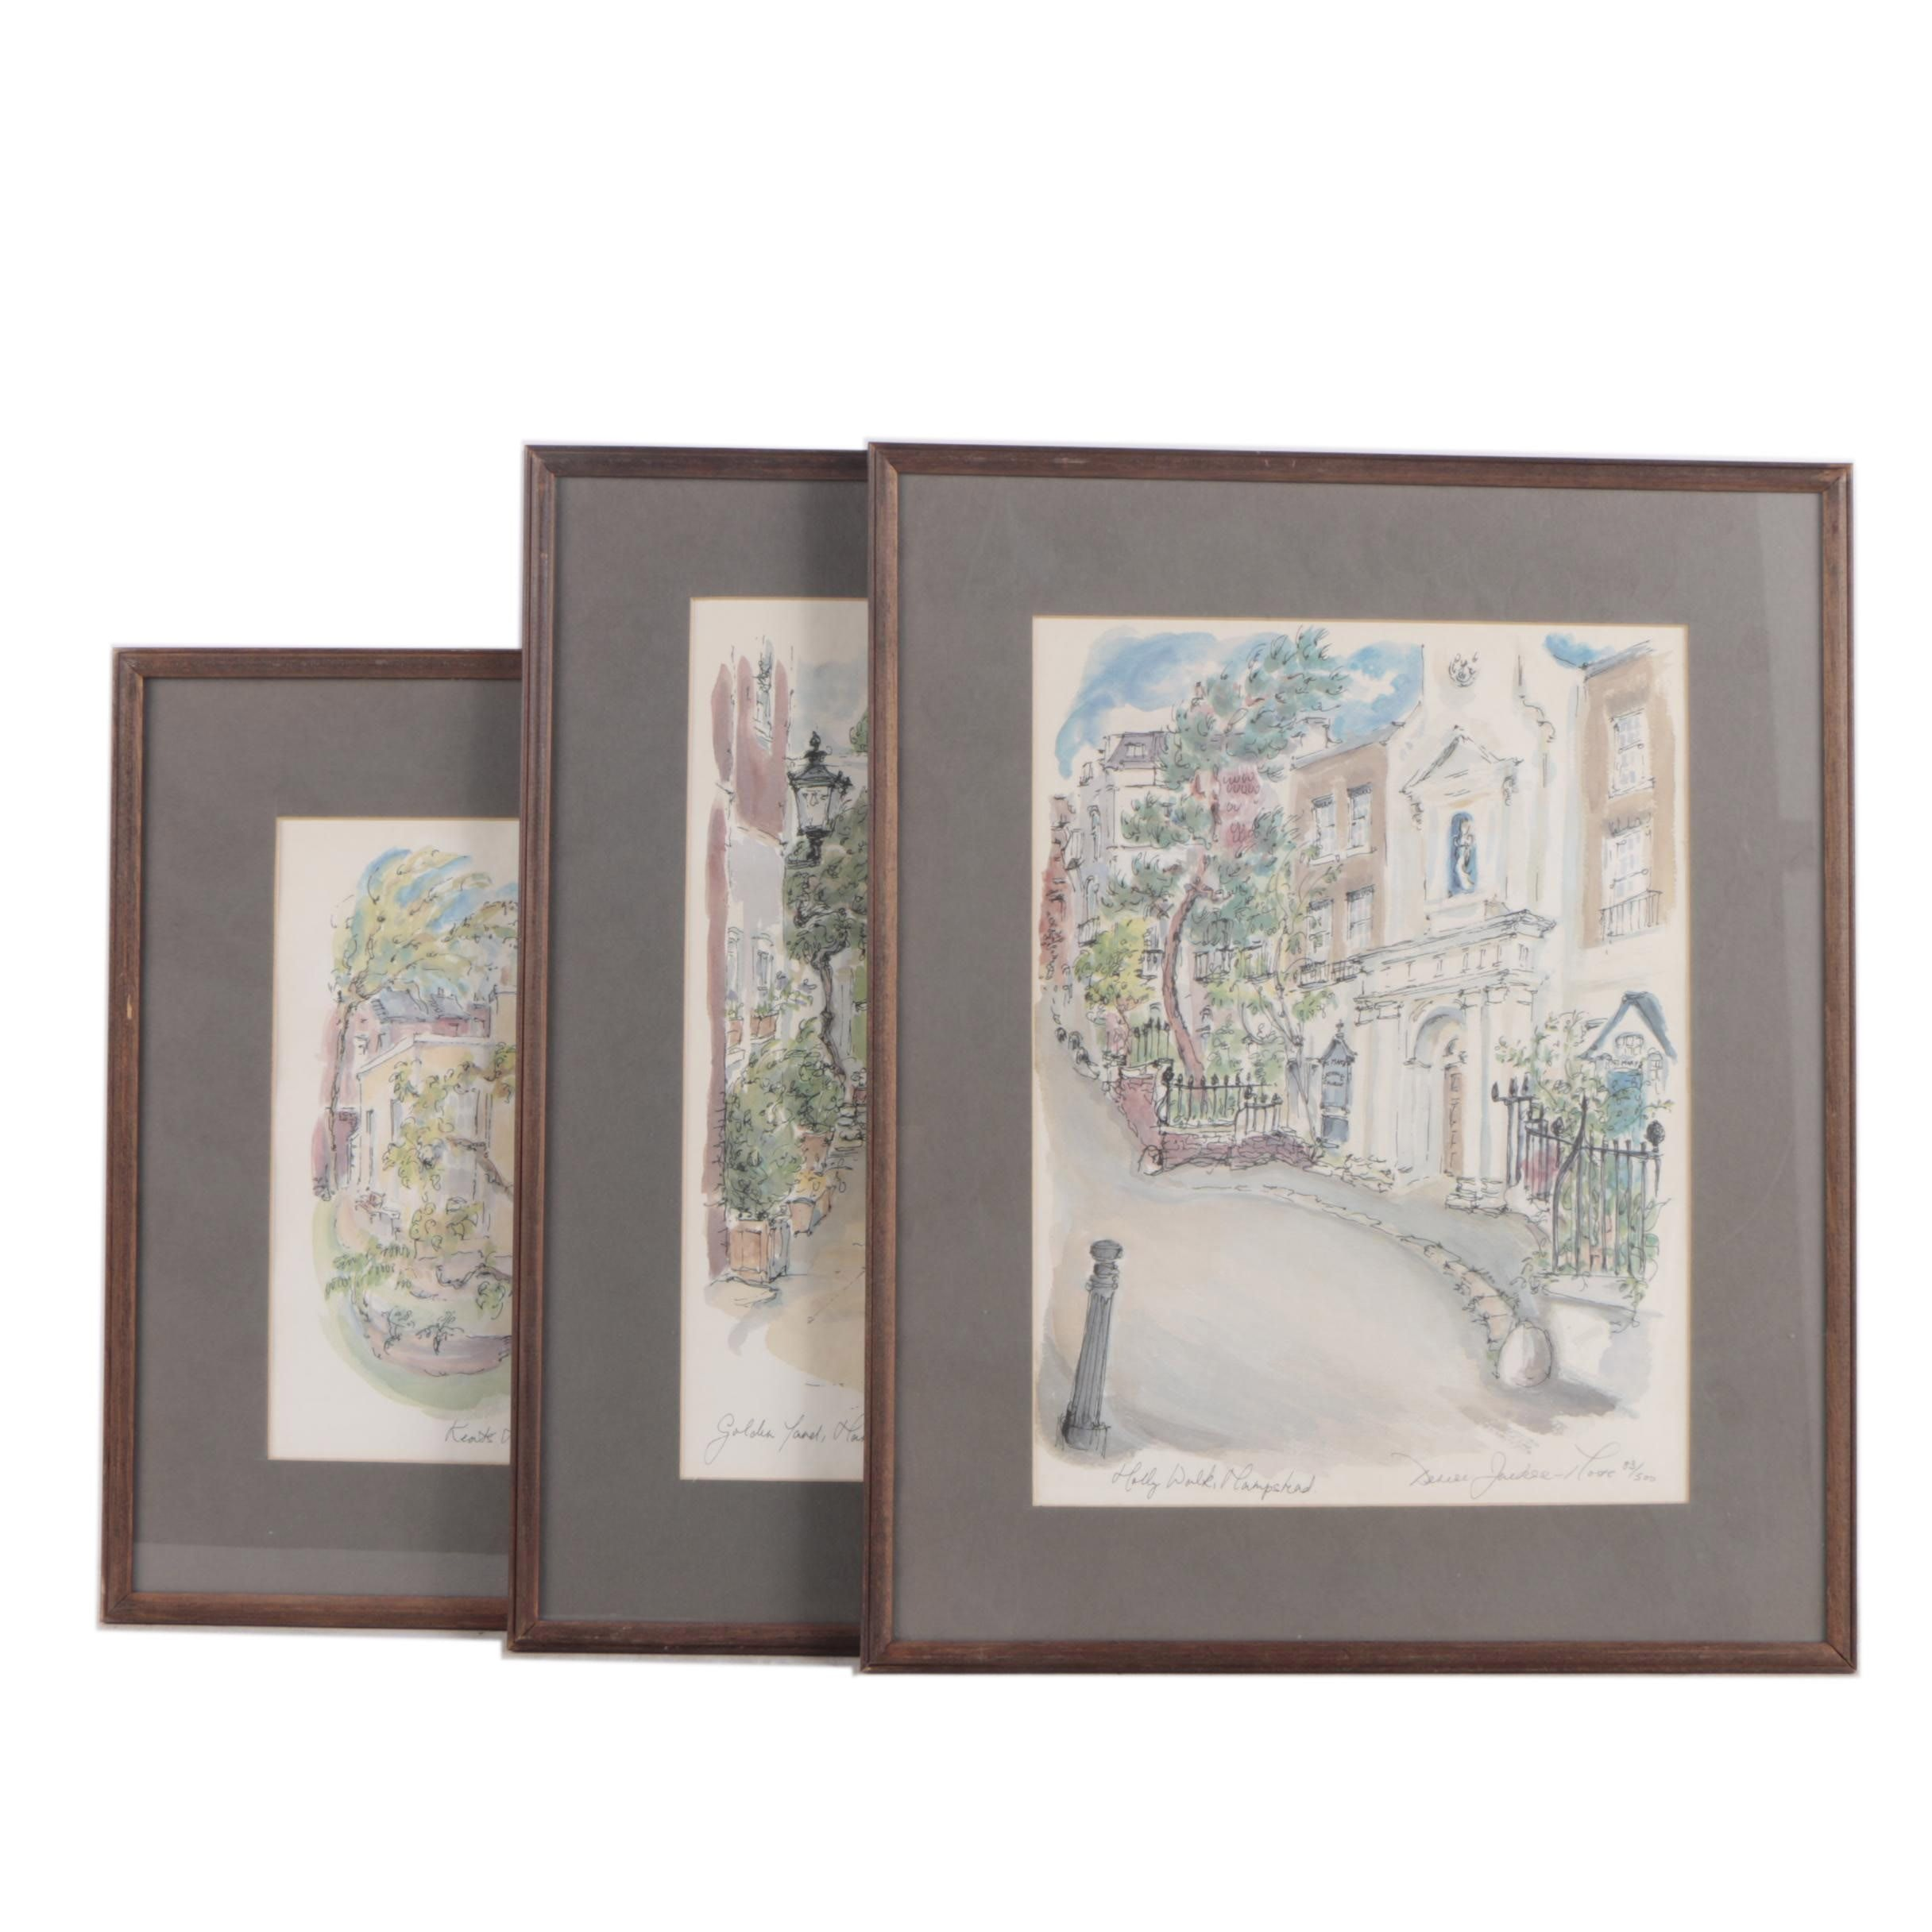 Limited Edition Signed Offset Lithographs of Scenes from Hampstead, England